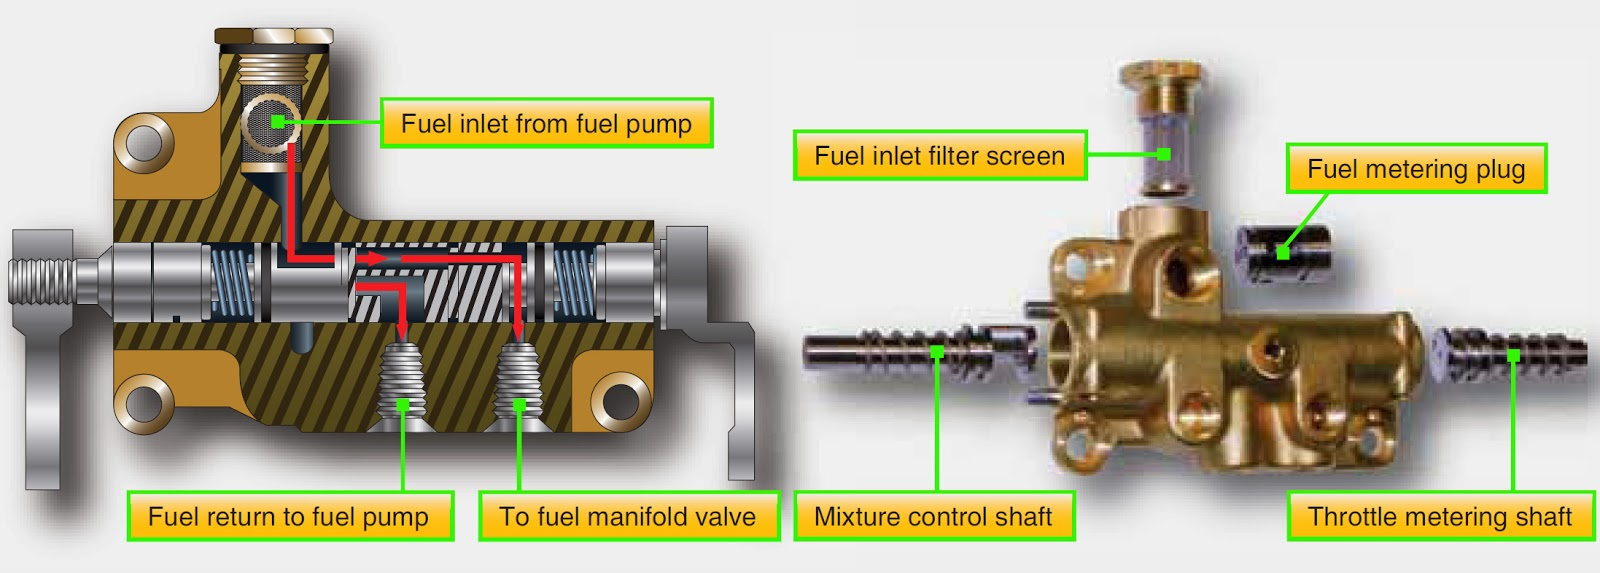 diagram turbine nozzles aircraft systems fuel injection systems gas turbine pv and ts diagram #13